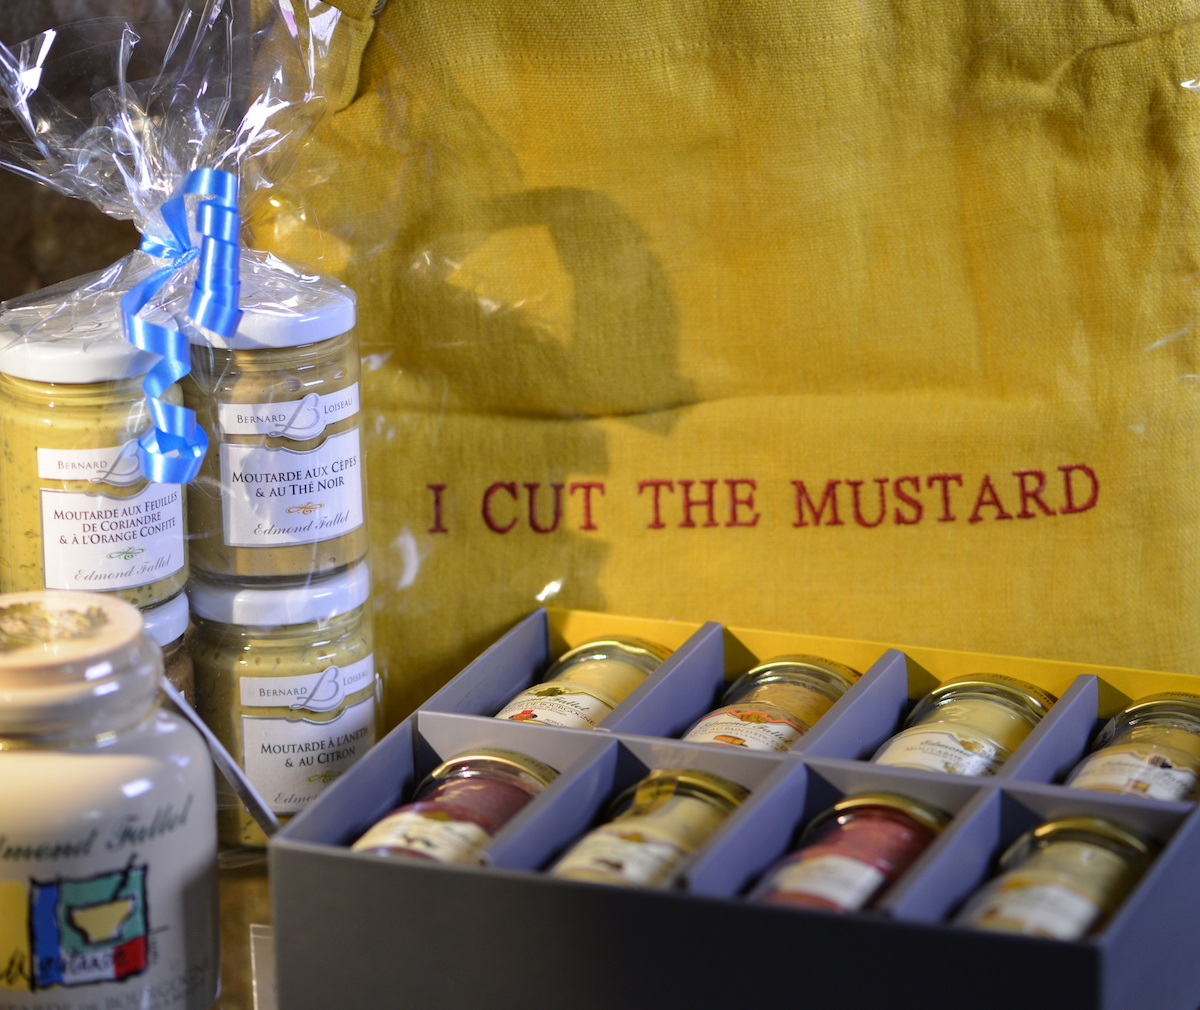 Mustards from Fallot and Purple Mustard Club Apron